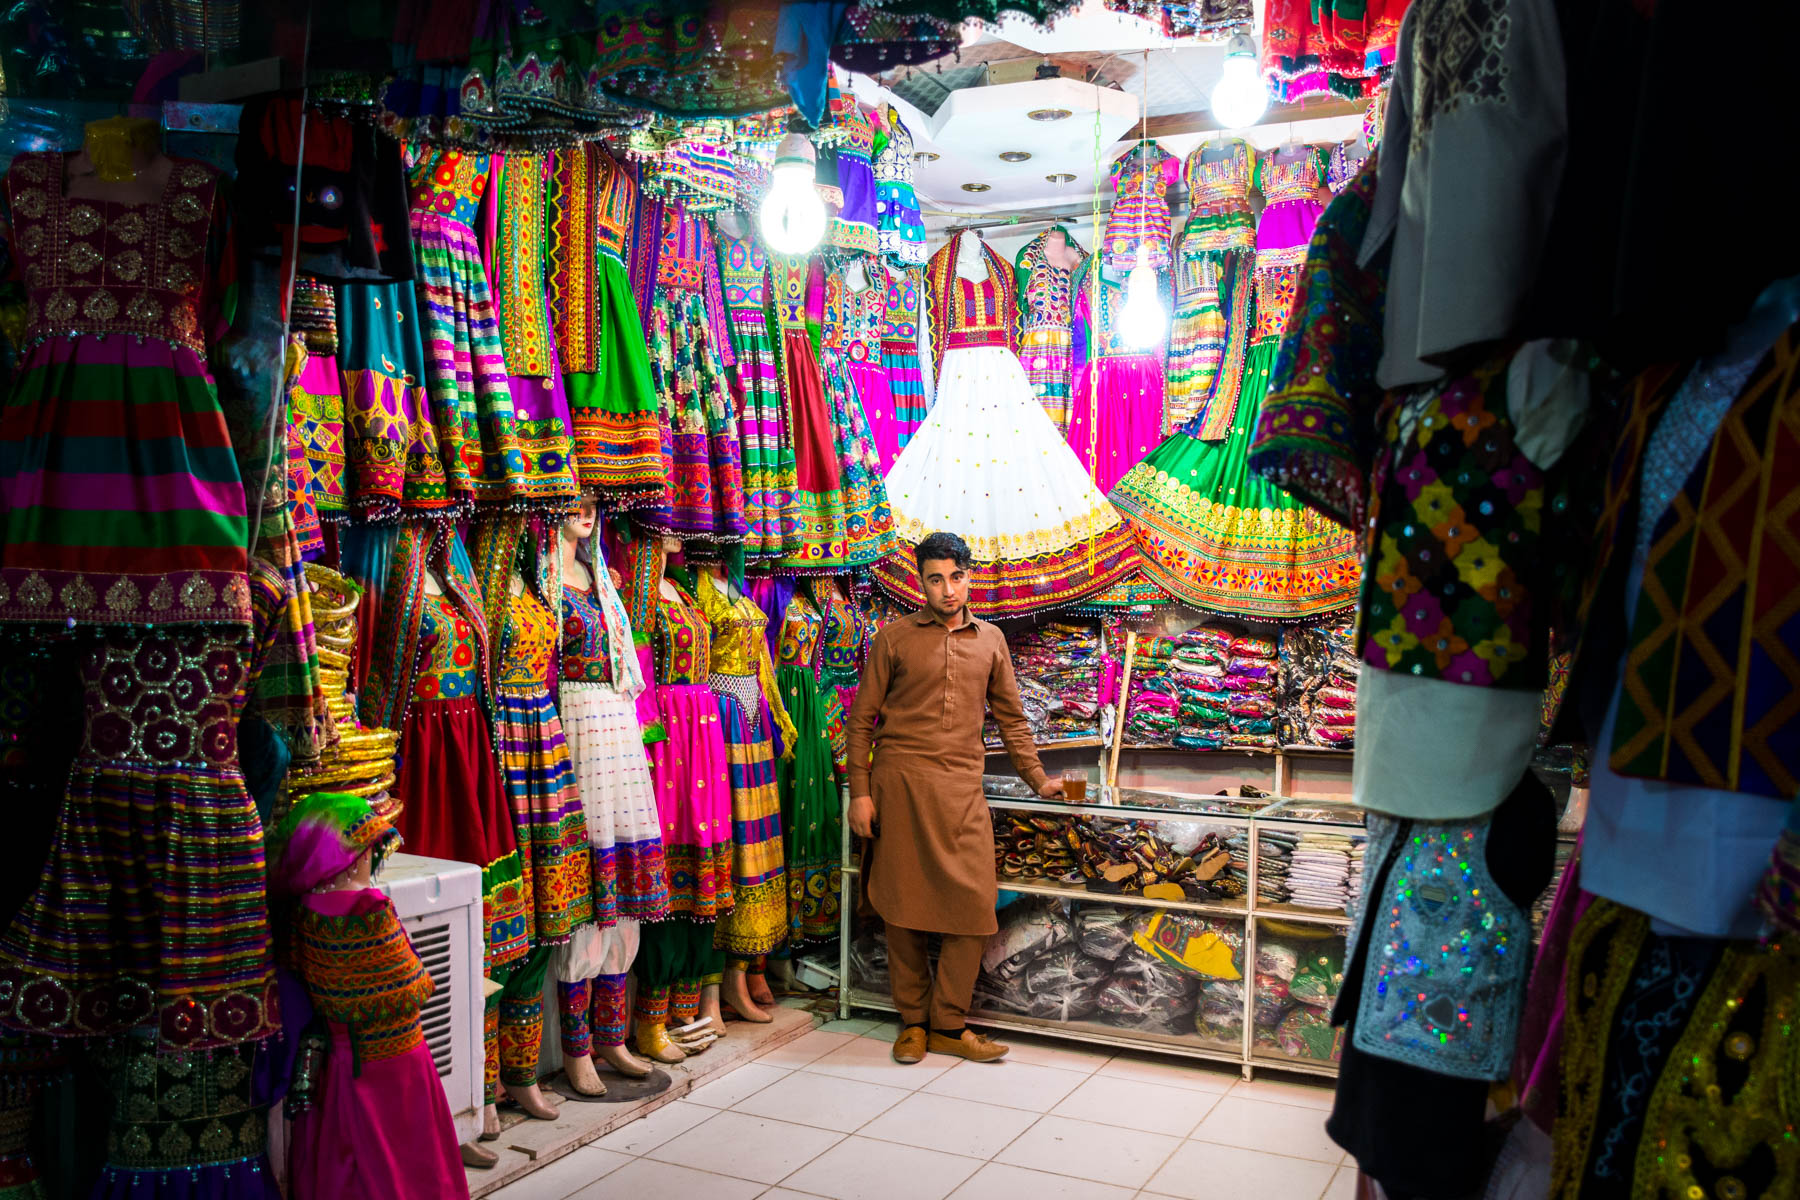 A boy standing in a colorful clothing bazaar in Mazar-i-Sharif, Afghanistan - Lost With Purpose